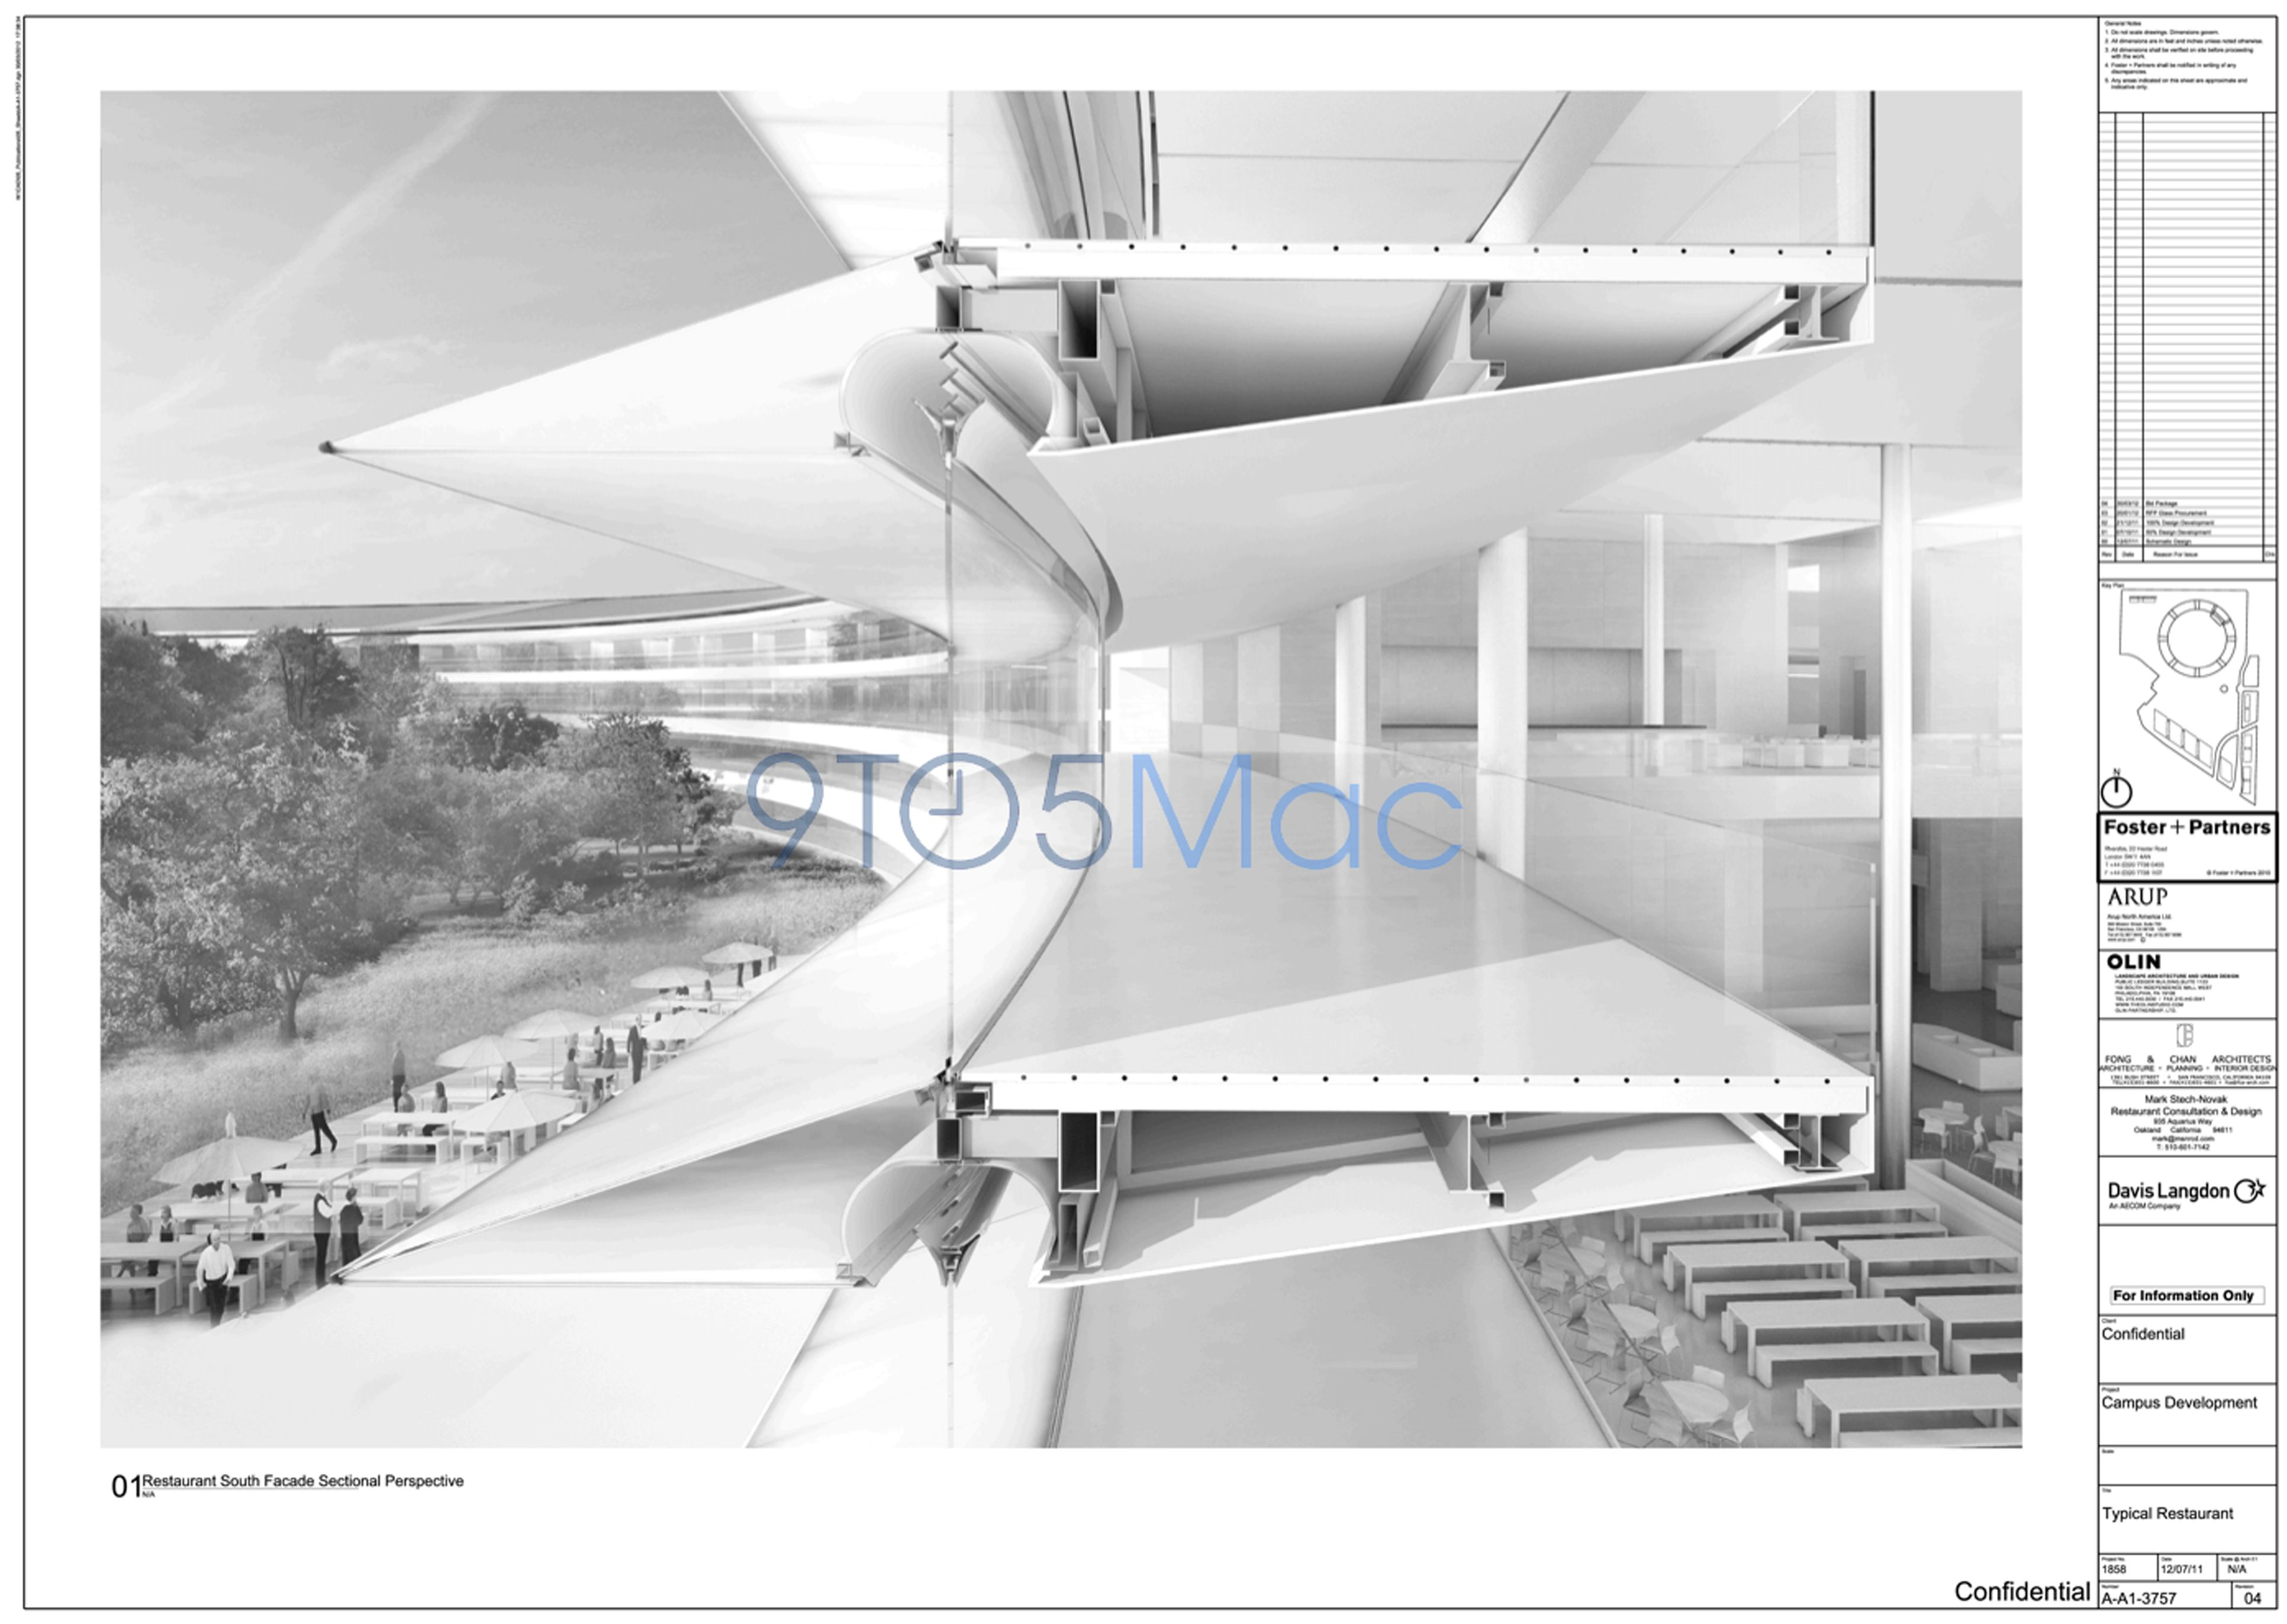 Facade New images of Apple s Campus 2 building show amazing detail